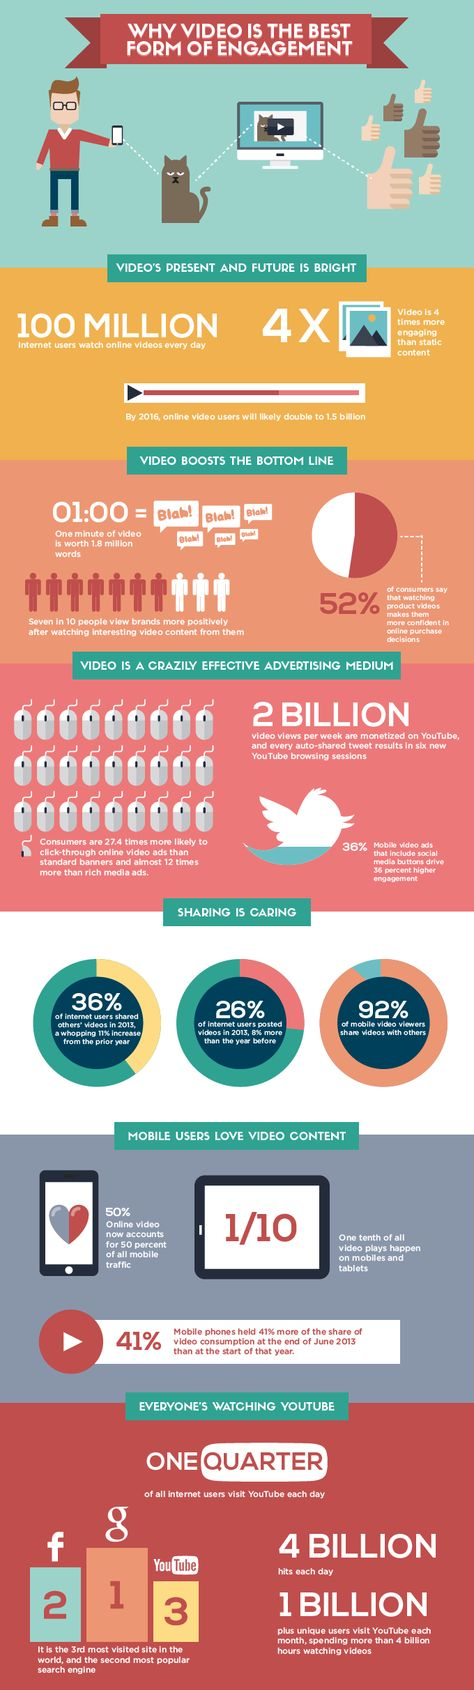 Infographic: Why Video Is The Best Form Of Engagement